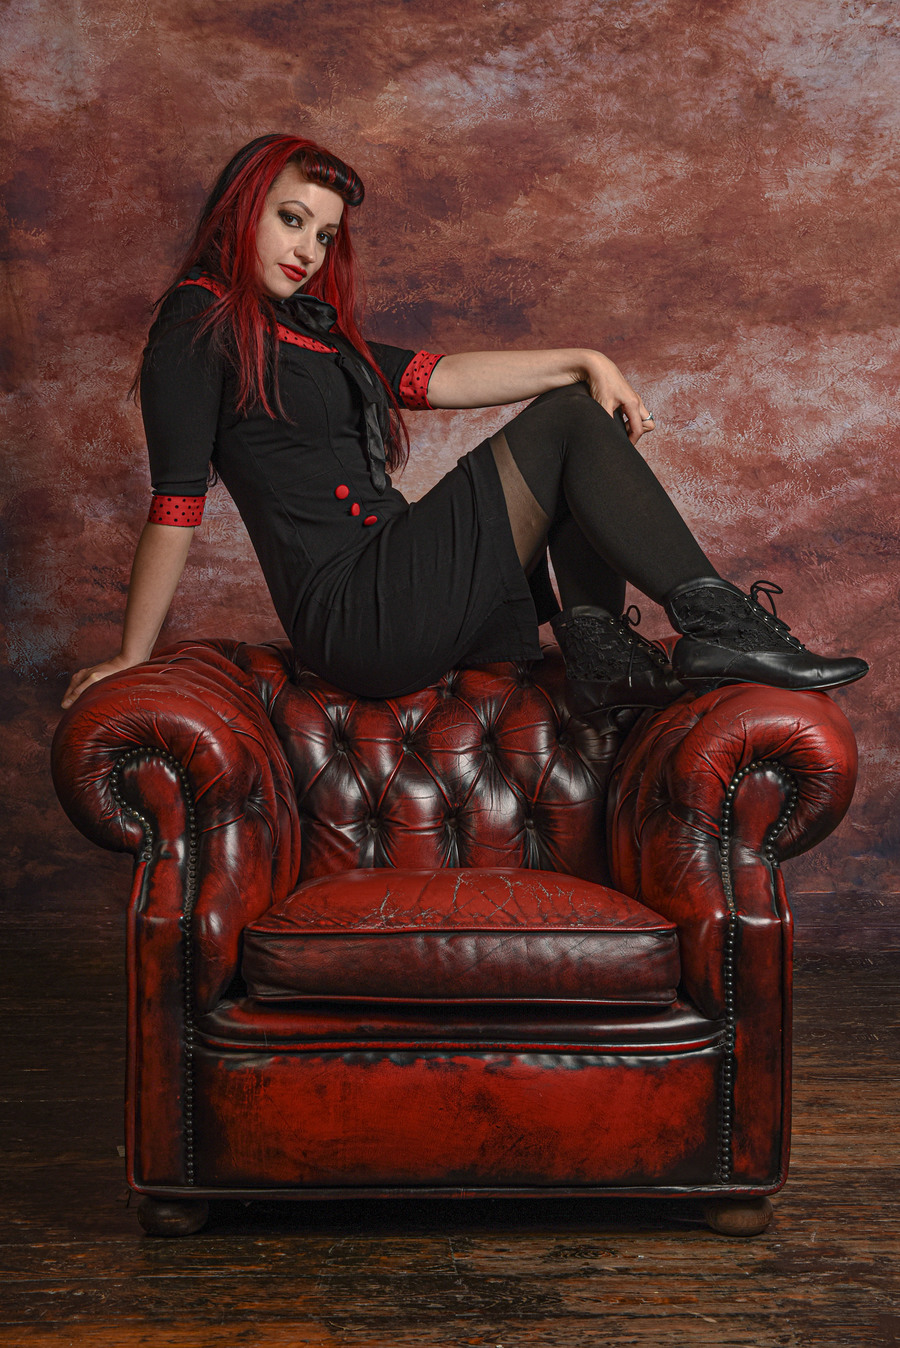 Are you sitting comfortably? / Photography by PARKES, Model Leonie Snow, Taken at ML Photo Studio / Uploaded 11th September 2020 @ 11:07 AM